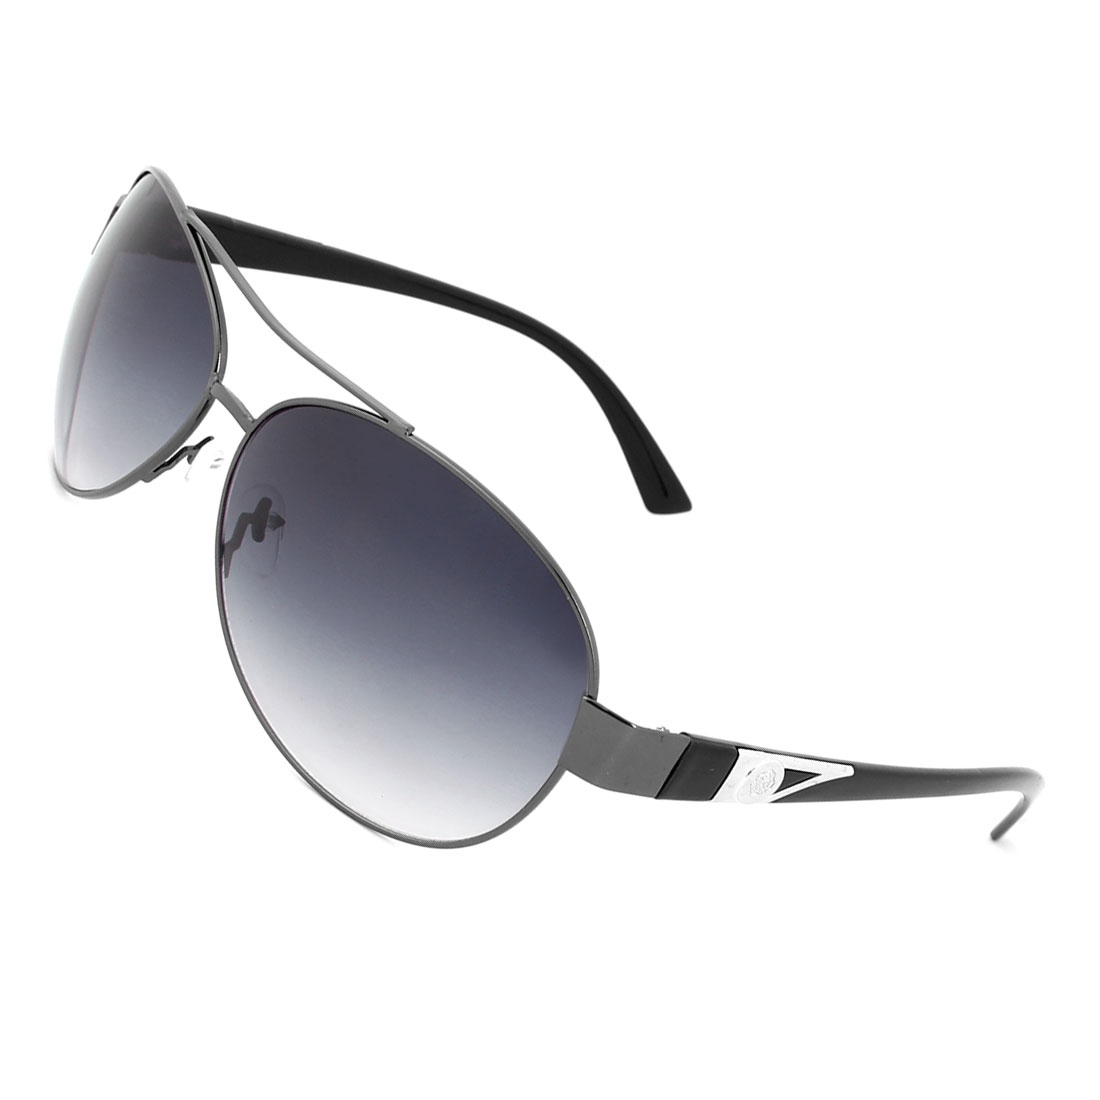 Tinted Raindrop Circular Metal Inlaid Arms Sunglass for Man